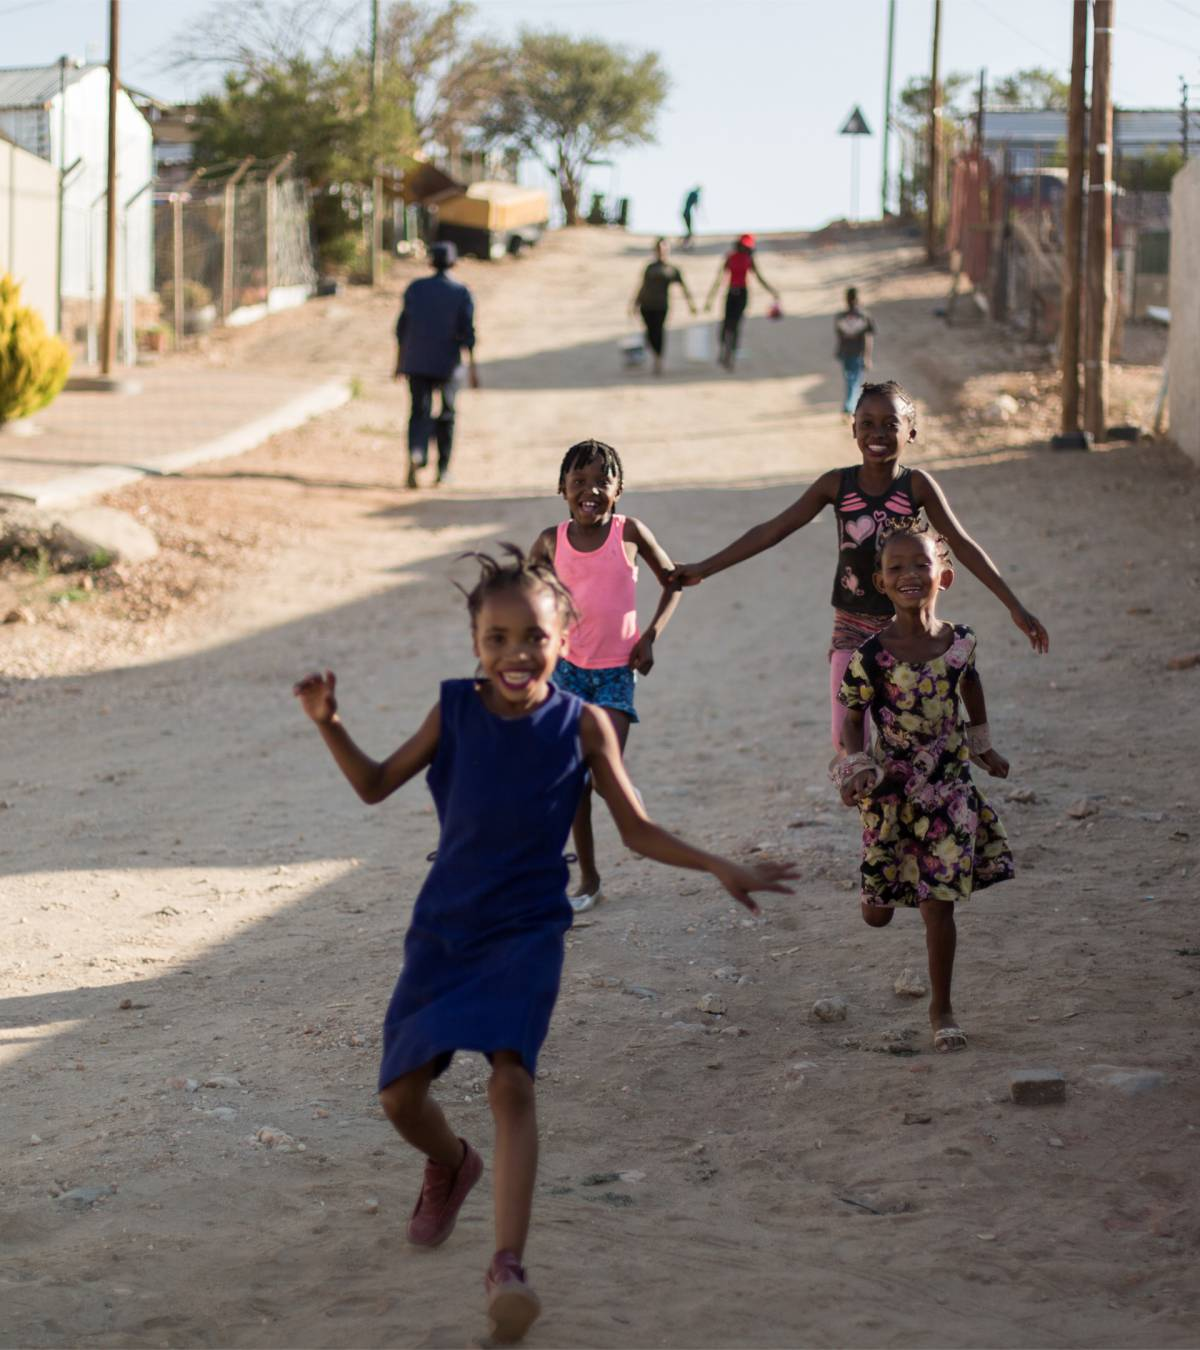 Four children running down a street, smiling